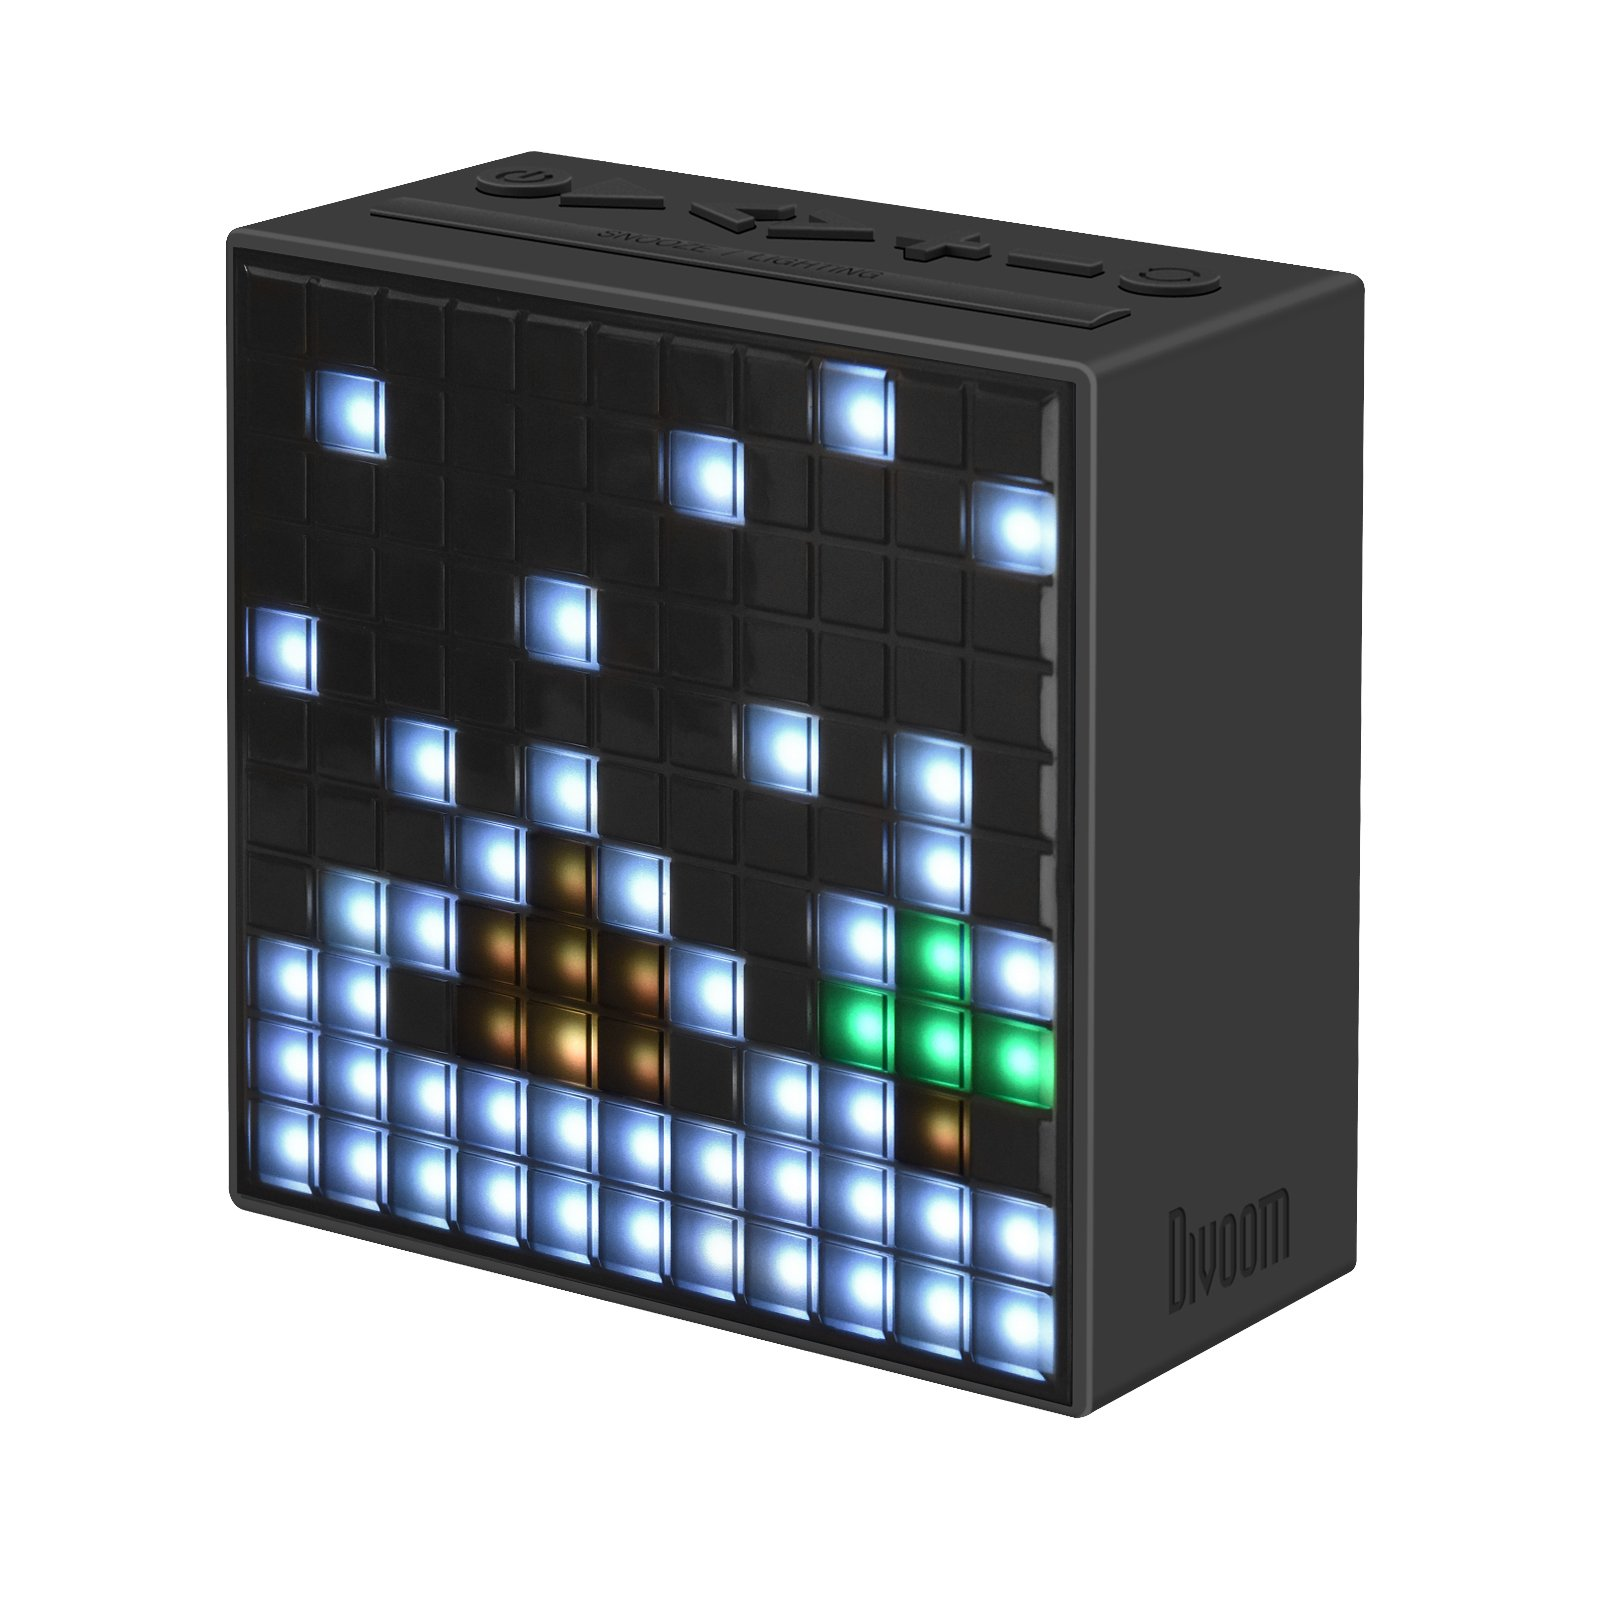 Divoom Timebox Smart Portable Bluetooth LED Speaker with APP-Controlled Pixel Art Animation, Notification and Build- In Clock/ Alarm - Black by Divoom